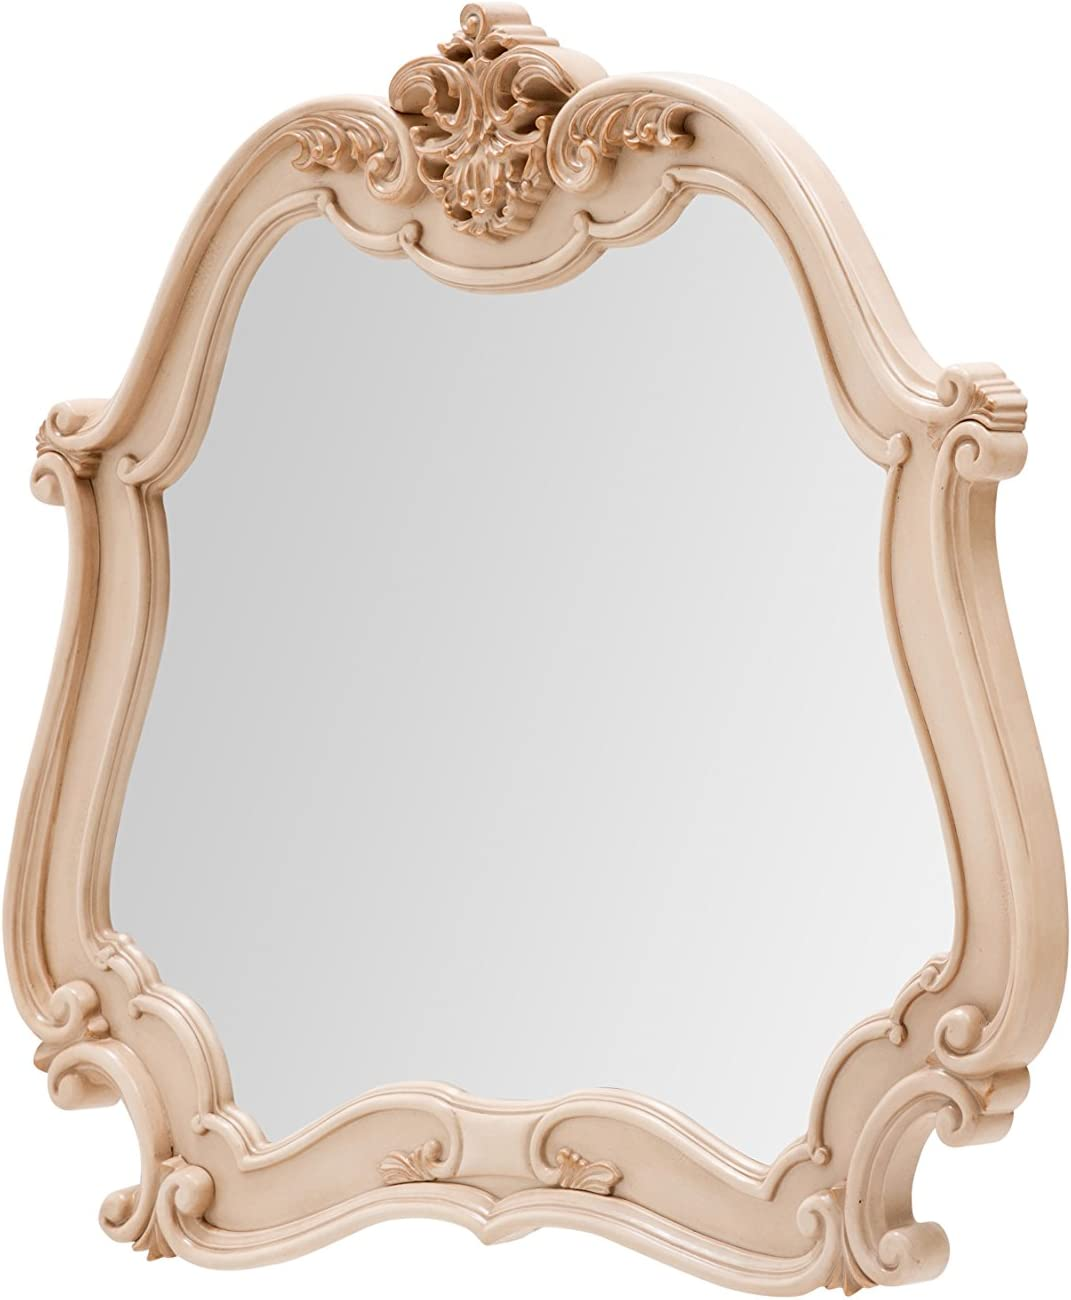 Michael Amini 9022667-04 In a popularity Lavelle Buffet Mirror Cottage Blanc Limited Special Price